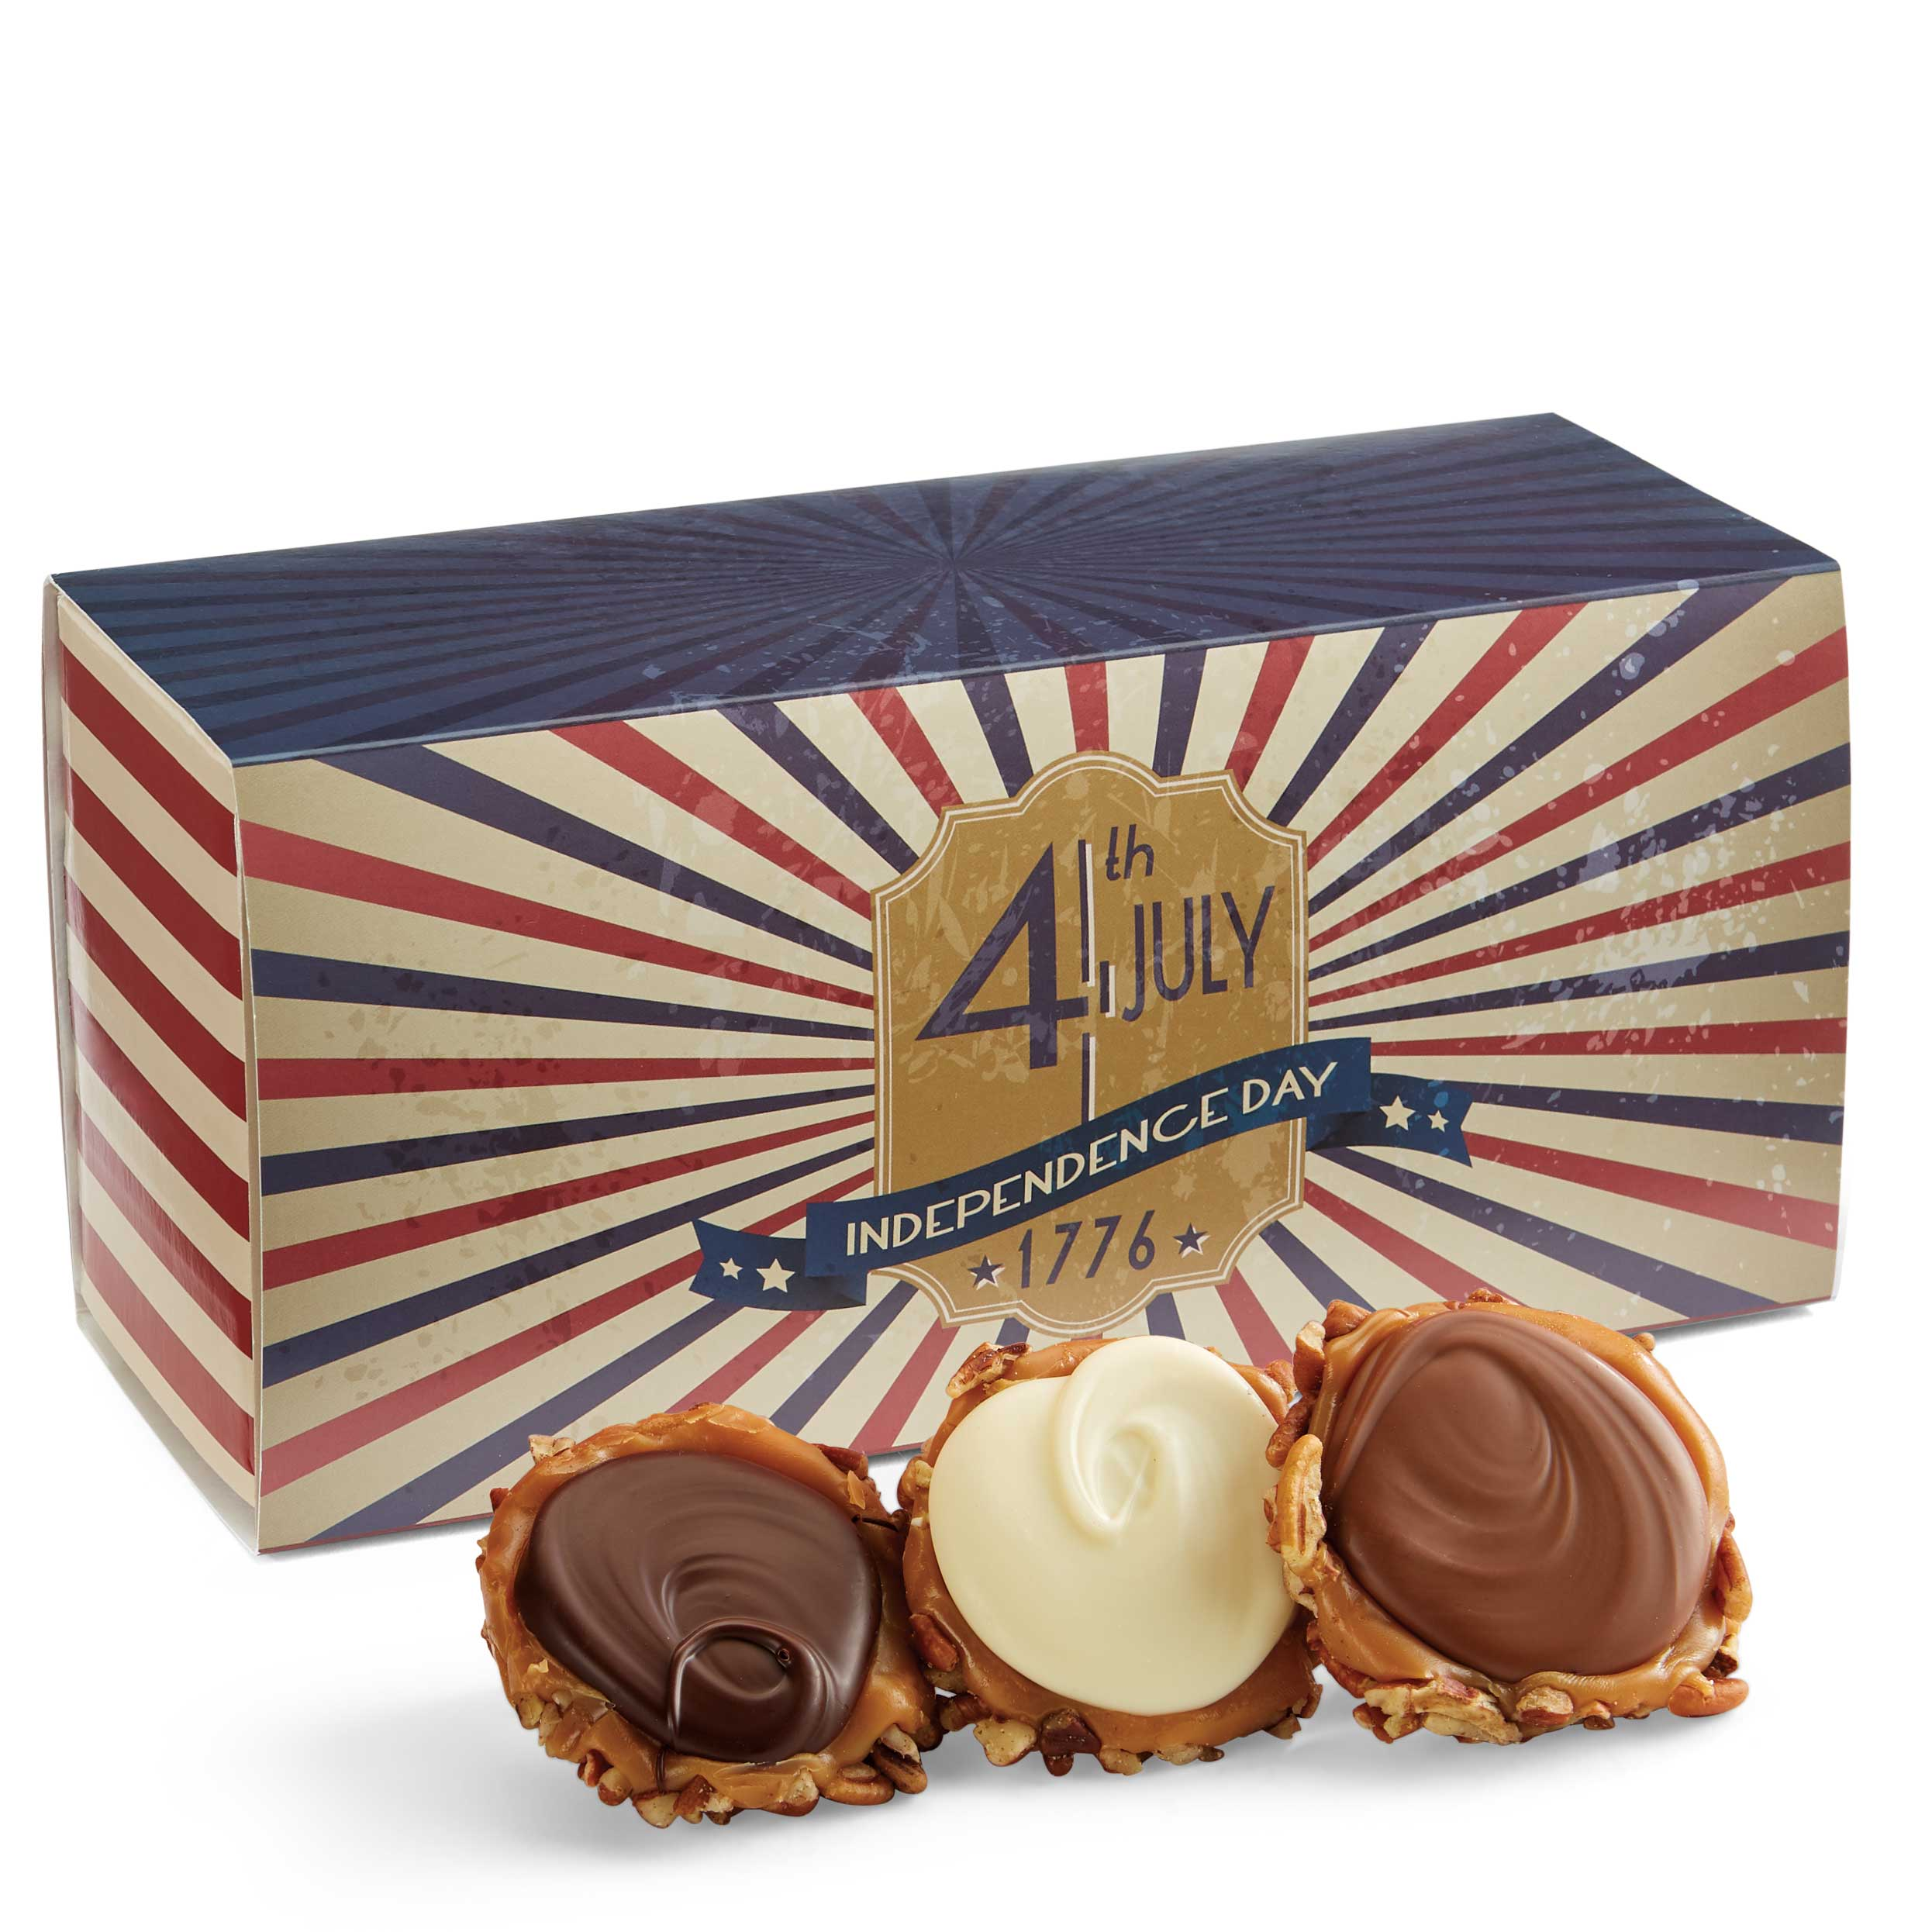 12 Piece Assorted Chocolate Turtle Gophers in the 4th of July Gift Box